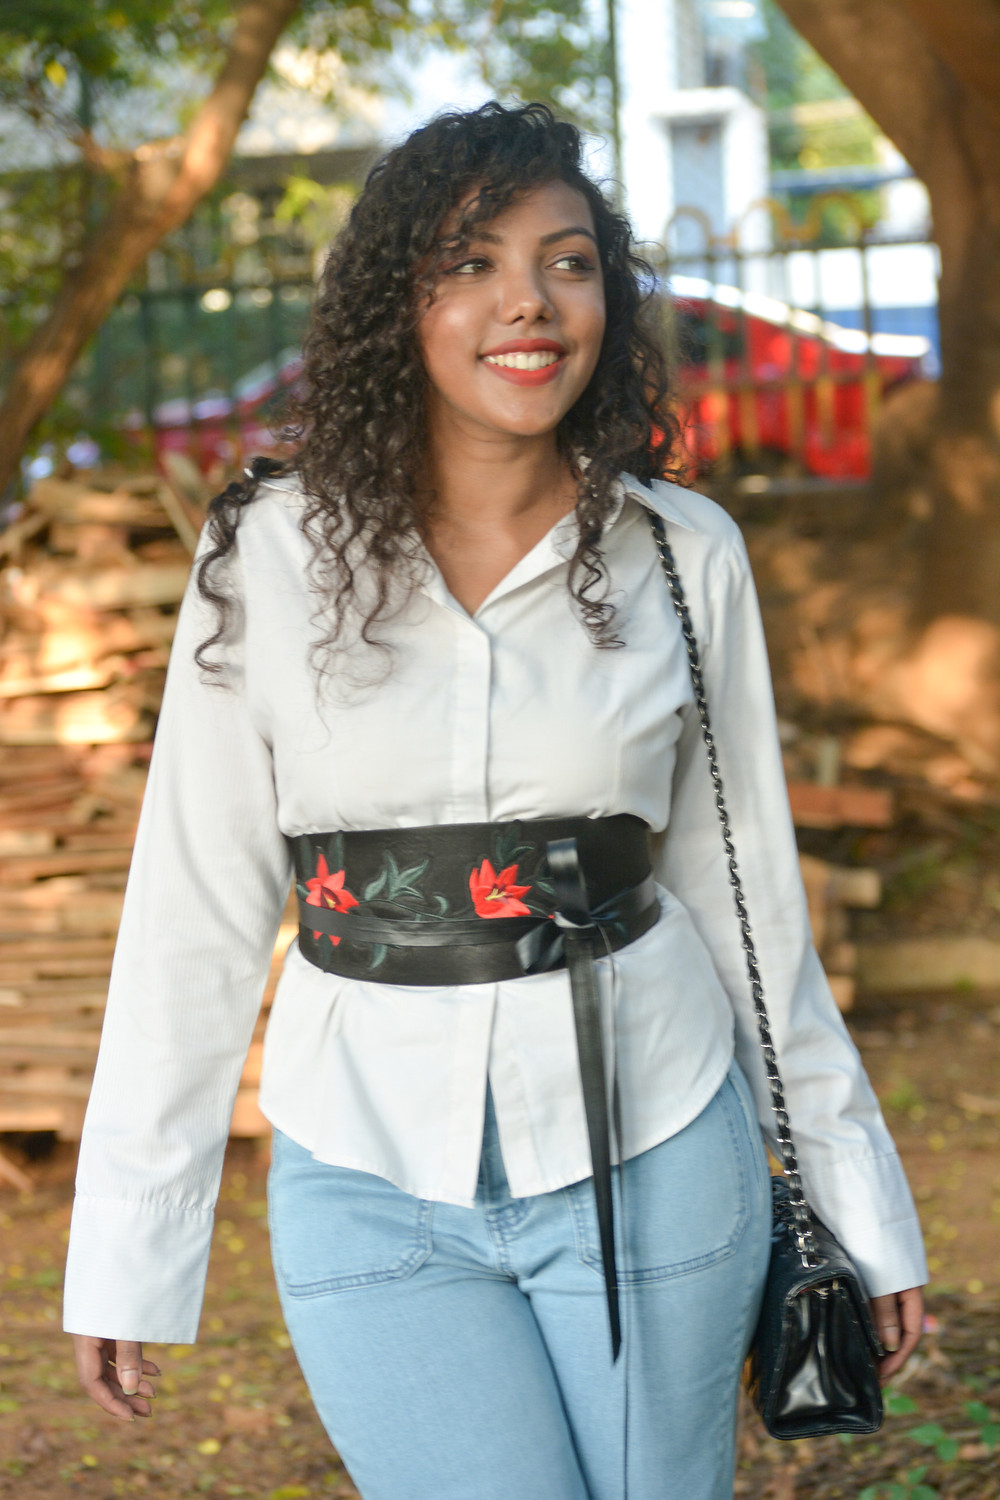 The Curly Mode, Trend, Fashion, Lookbook, ootd